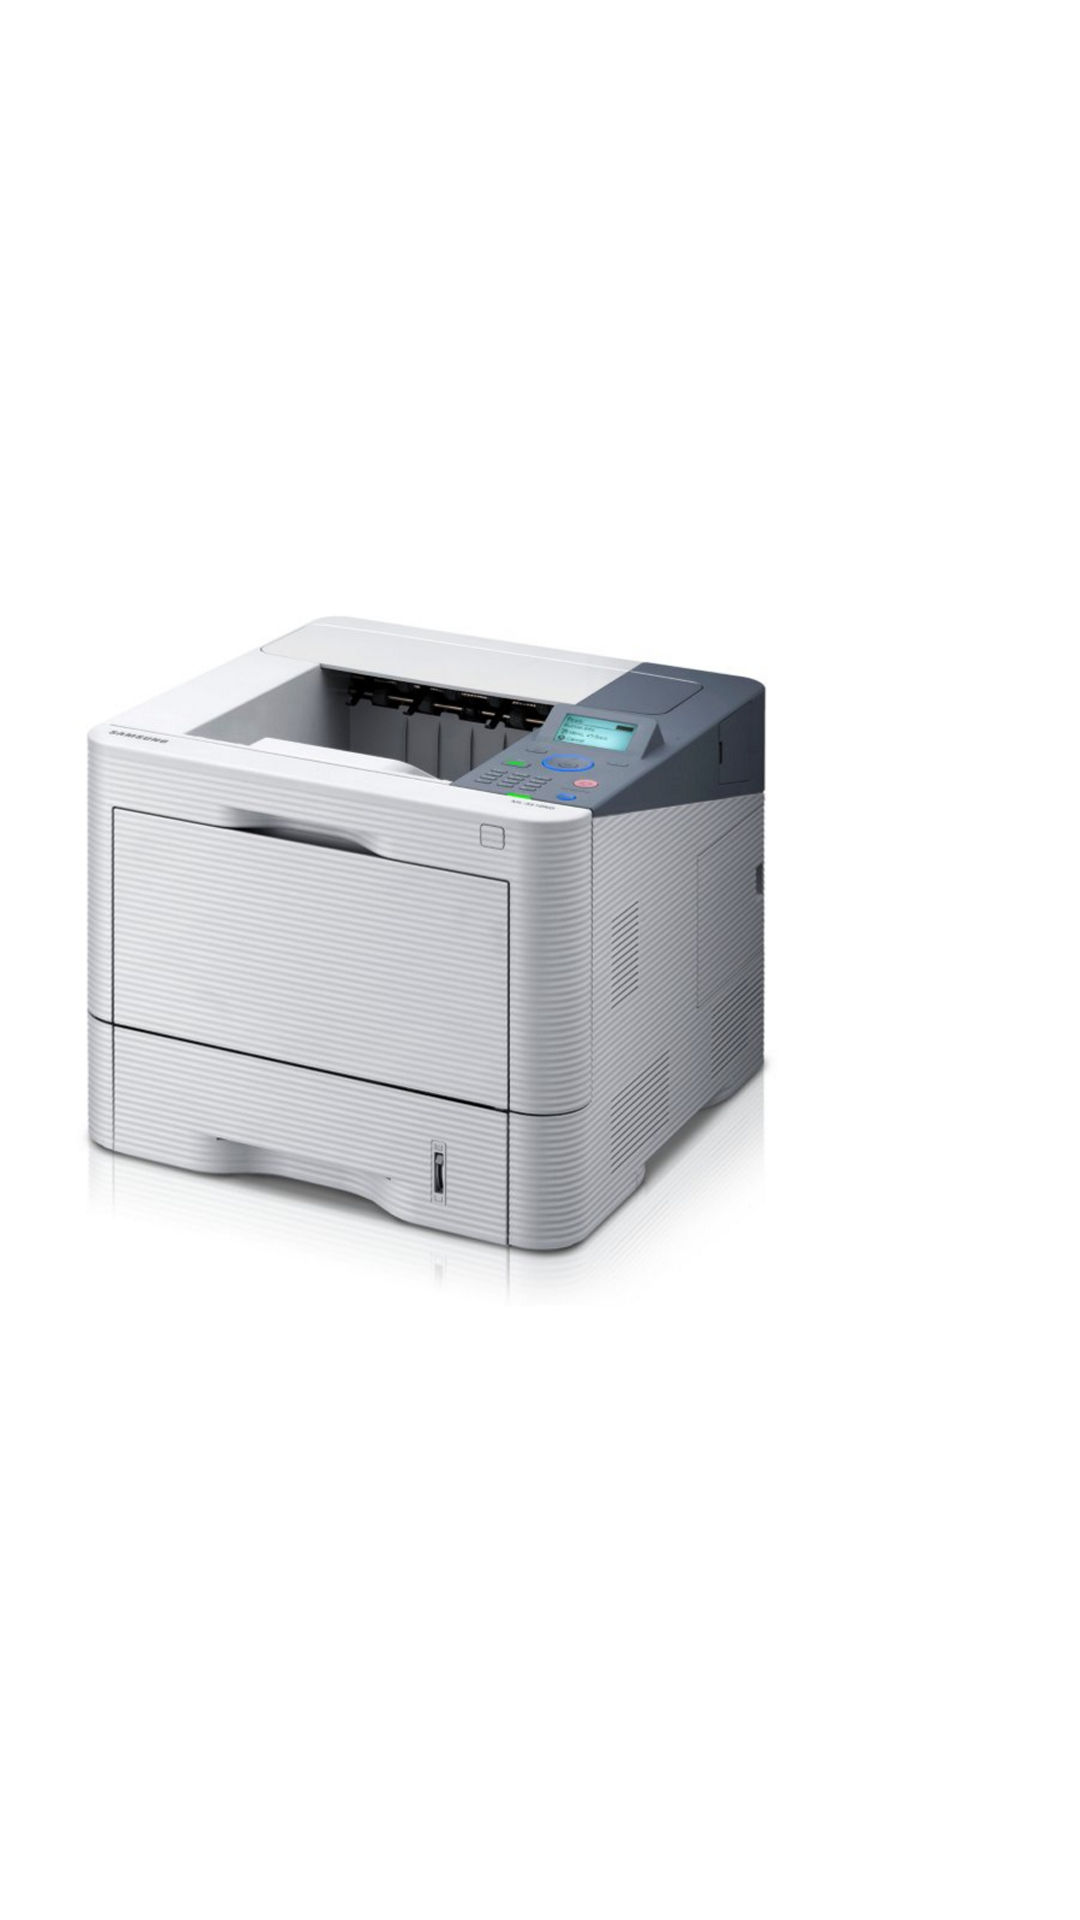 Samsung ML-4510ND Single-Function Laser Printer